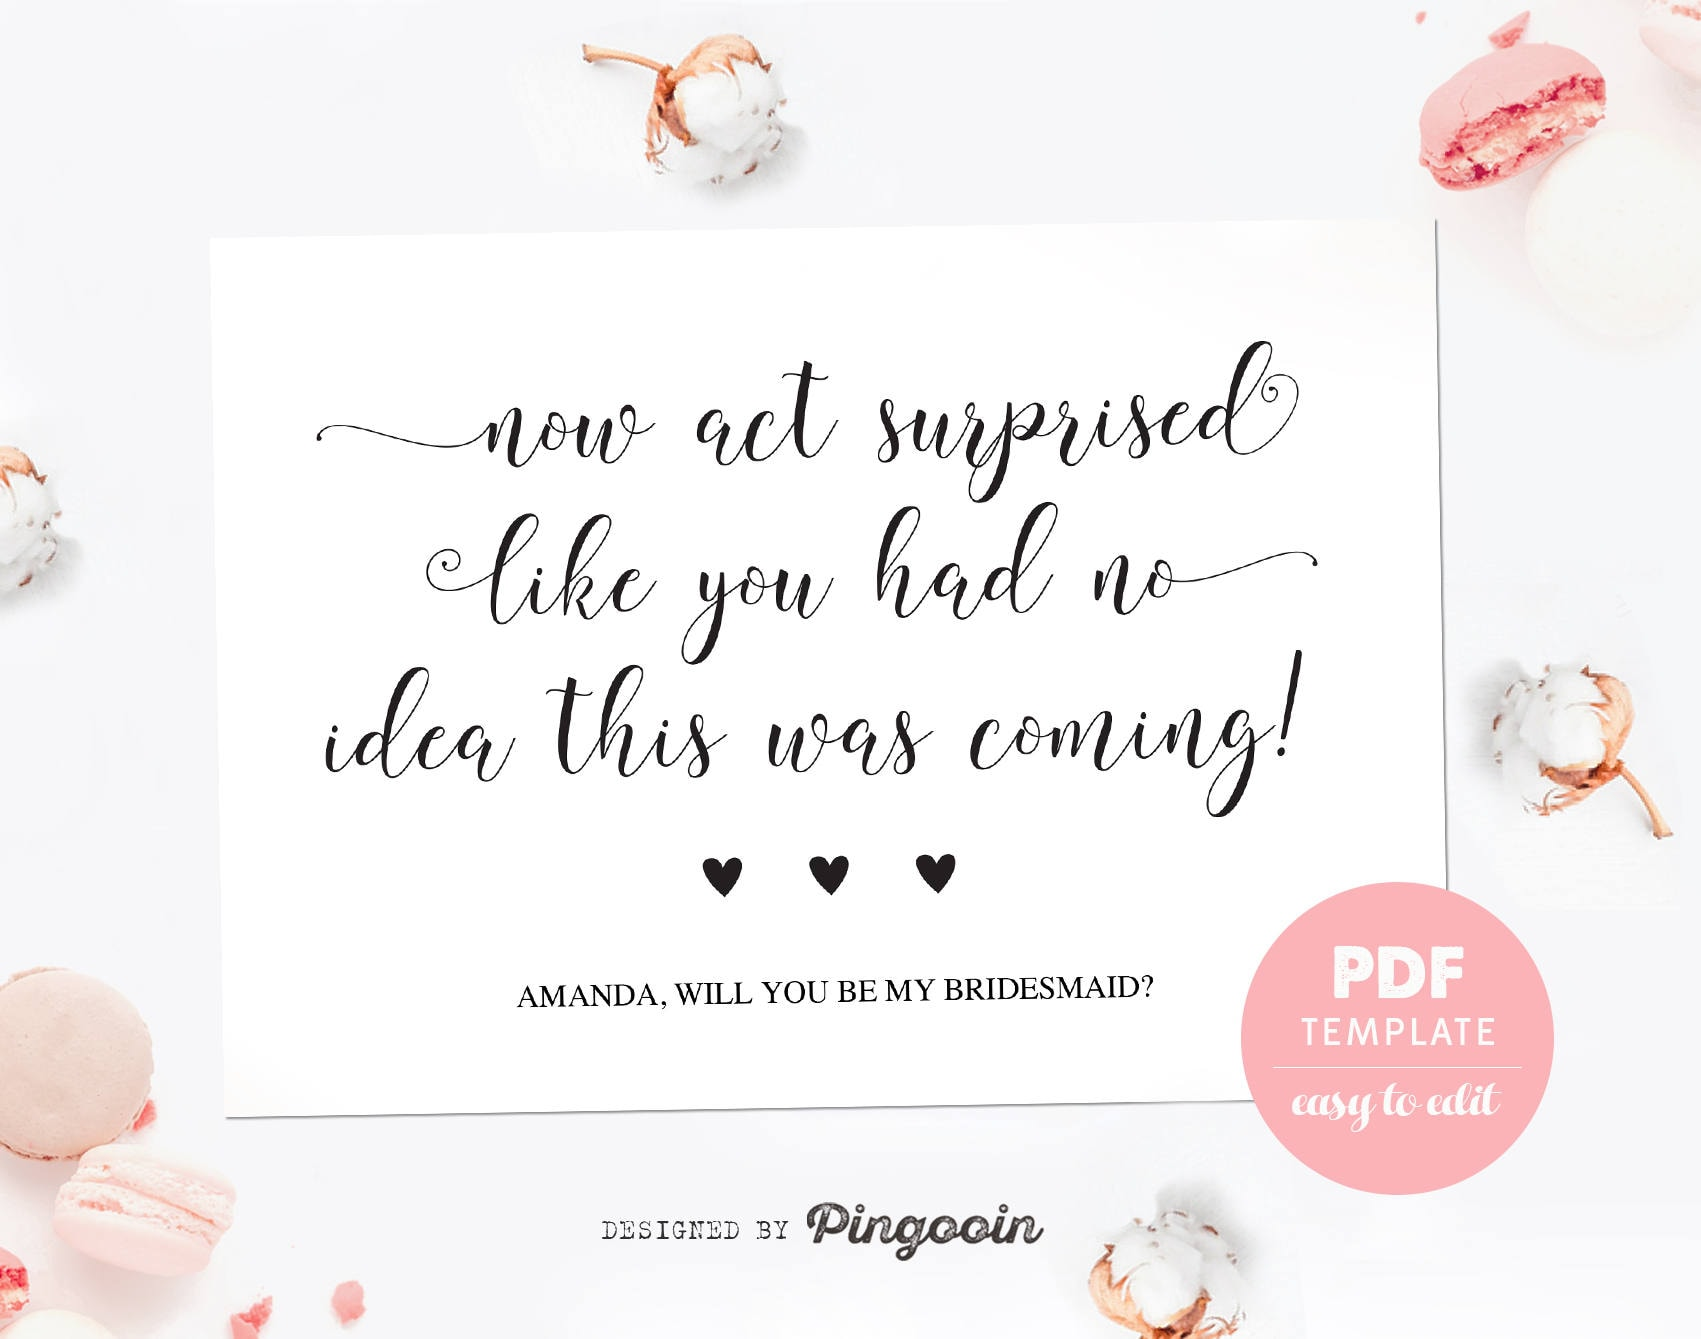 graphic regarding Free Printable Bridesmaid Proposal referred to as Bridesmaid proposal card. Amusing bridesmaid template card. Designed of honor card. Bridesmaid proposal PDF template for fast obtain. BMP006